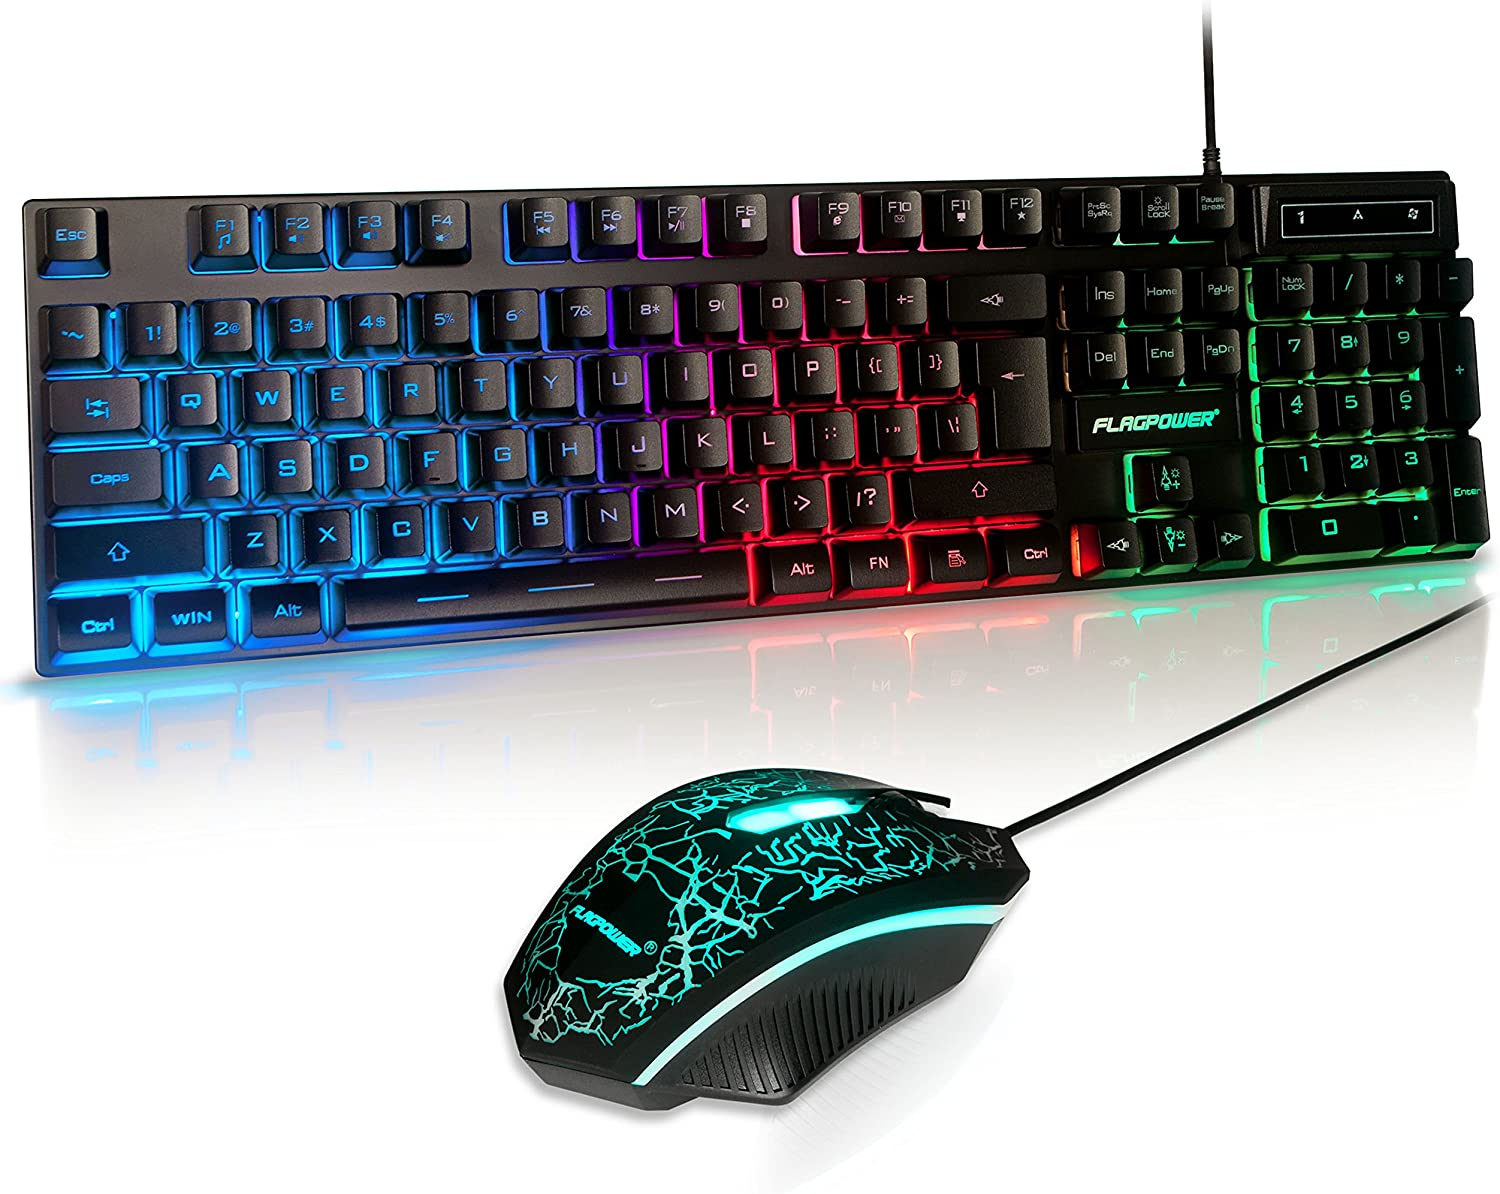 (Upgrade Version) FLAGPOWER LED Backlit Wired Gaming Keyboard and Mouse Combo, Mechanical Feeling Rainbow LED Backlight Keyboard with 3200DPI Adjustable USB Mice for PC/laptop/MAC/win7/win8/win10